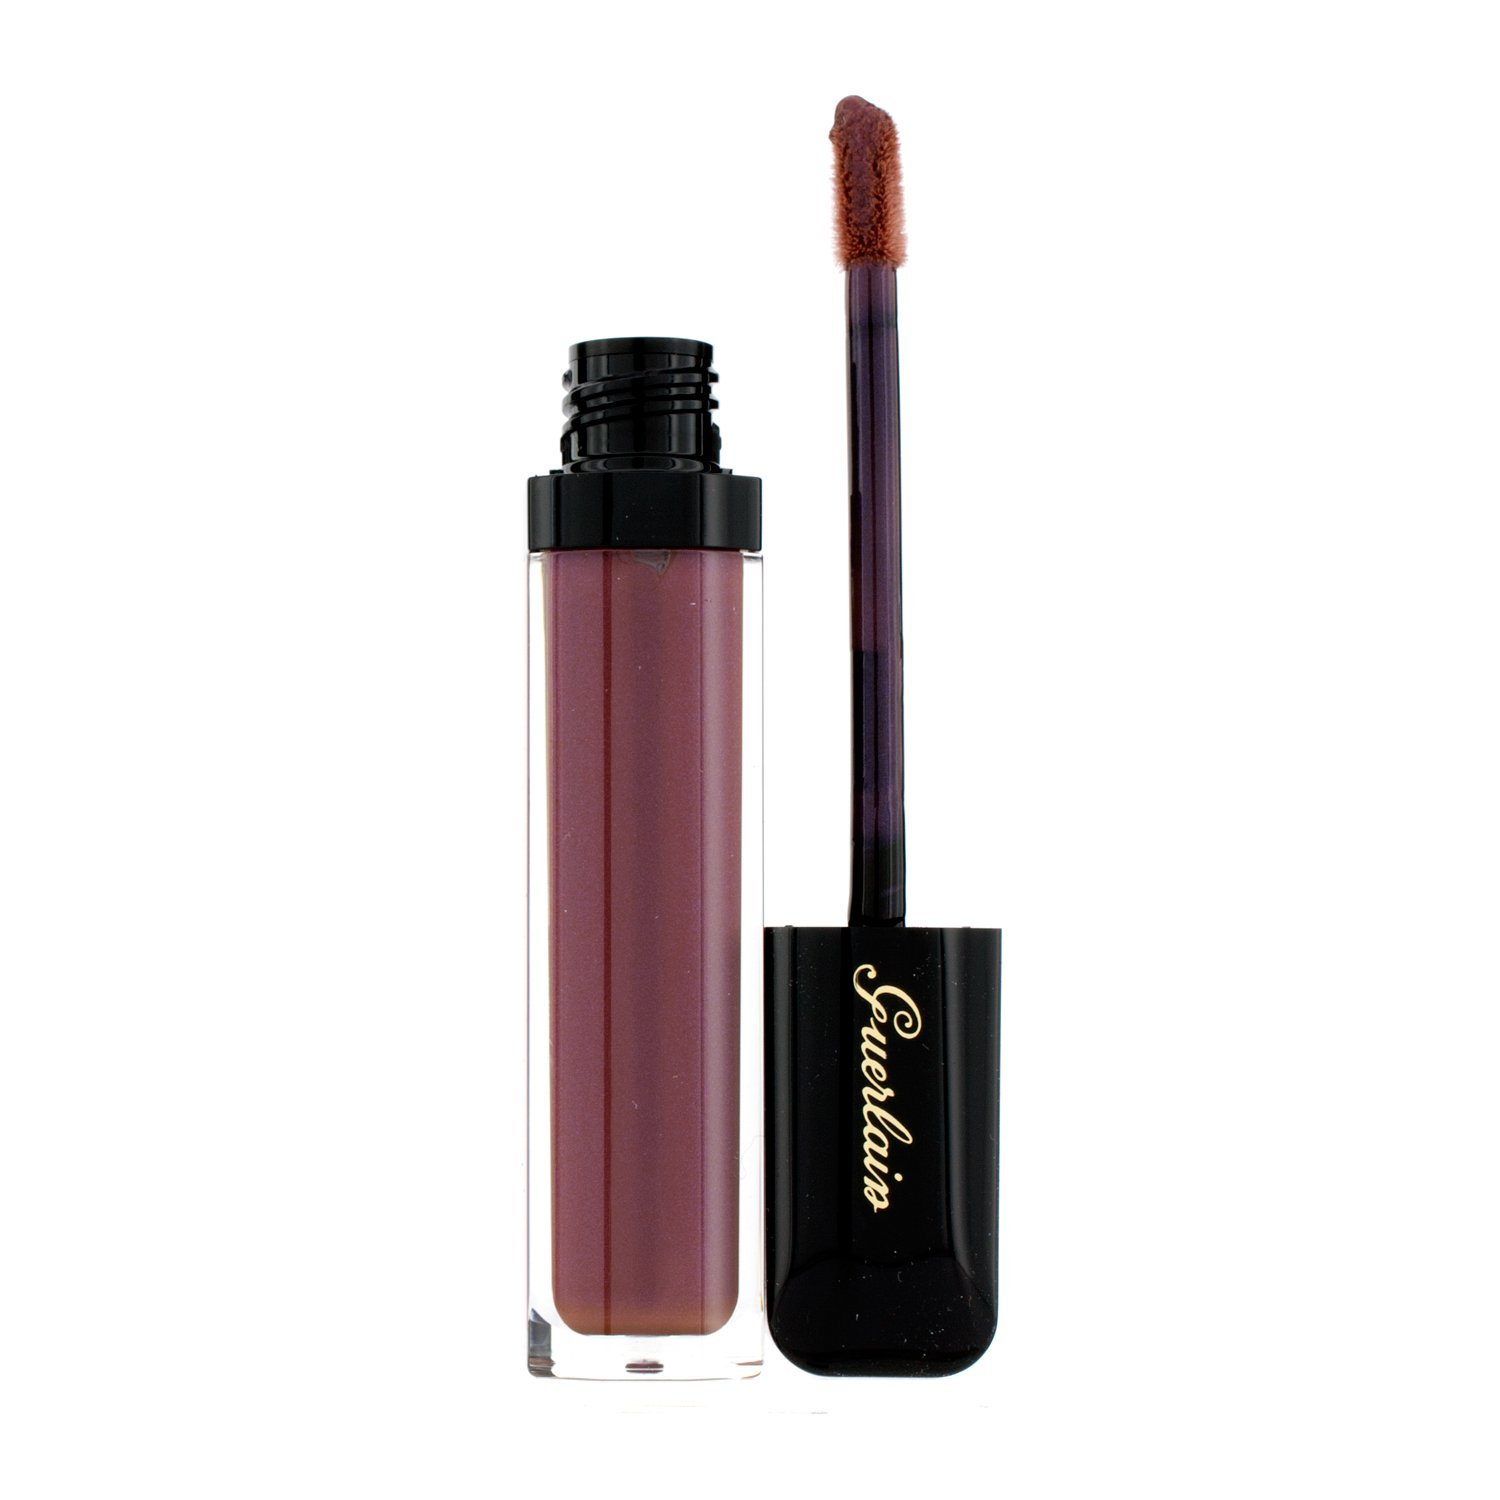 Guerlain Gloss D'enfer Maxi Shine Intense Colour & Shine Lip Gloss - # 403 Brun Buzz 7.5ml/0.25oz